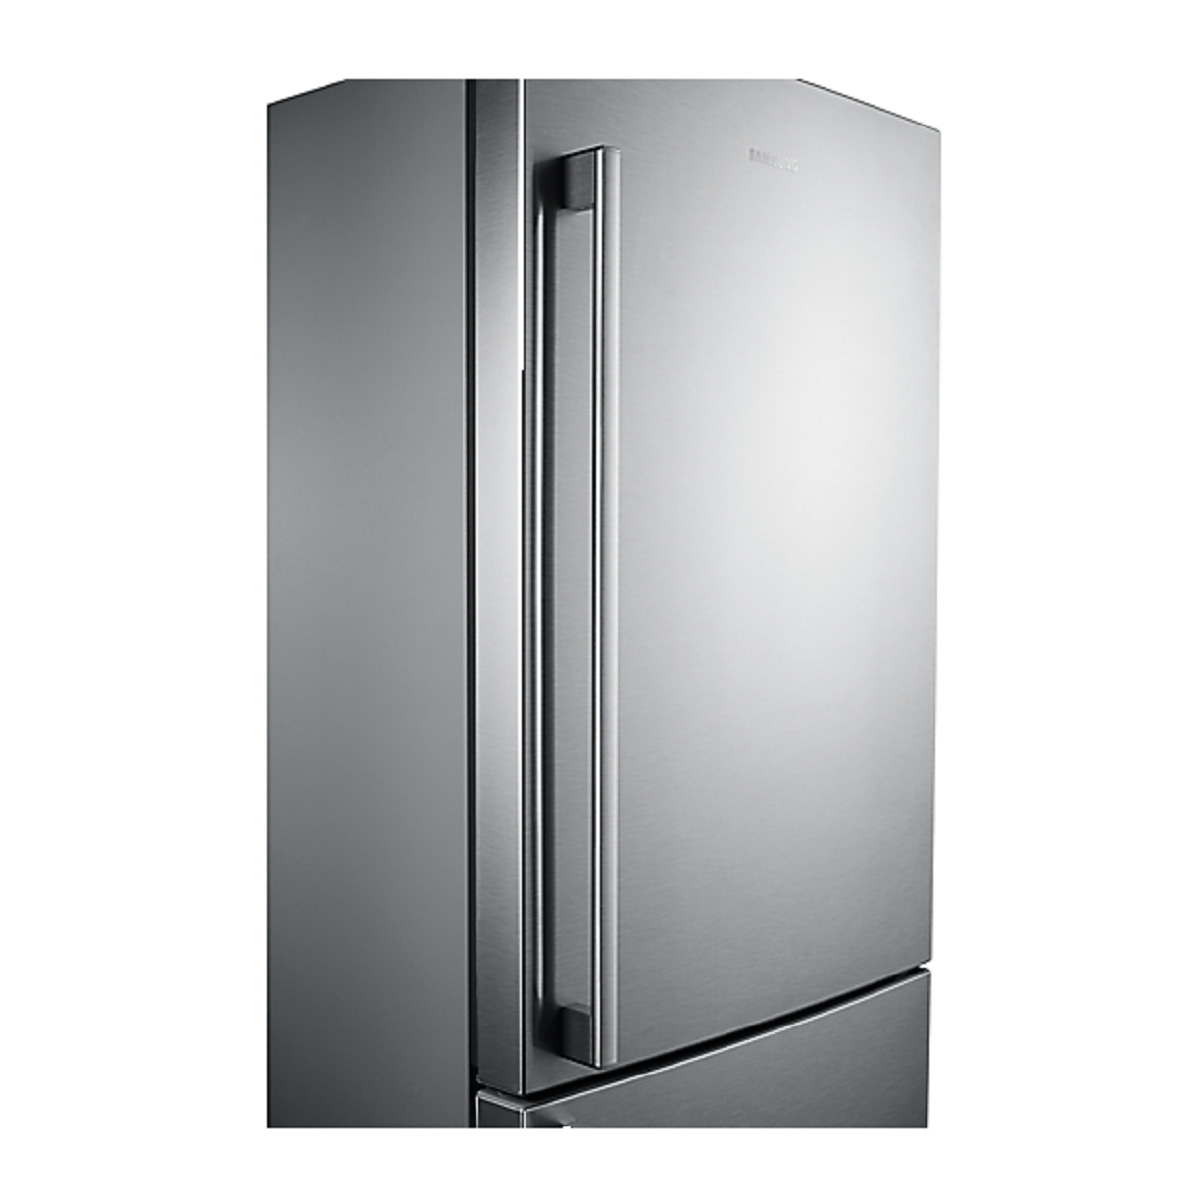 Samsung SRL458ELS 458Litres Bottom Mount Fridge 35961